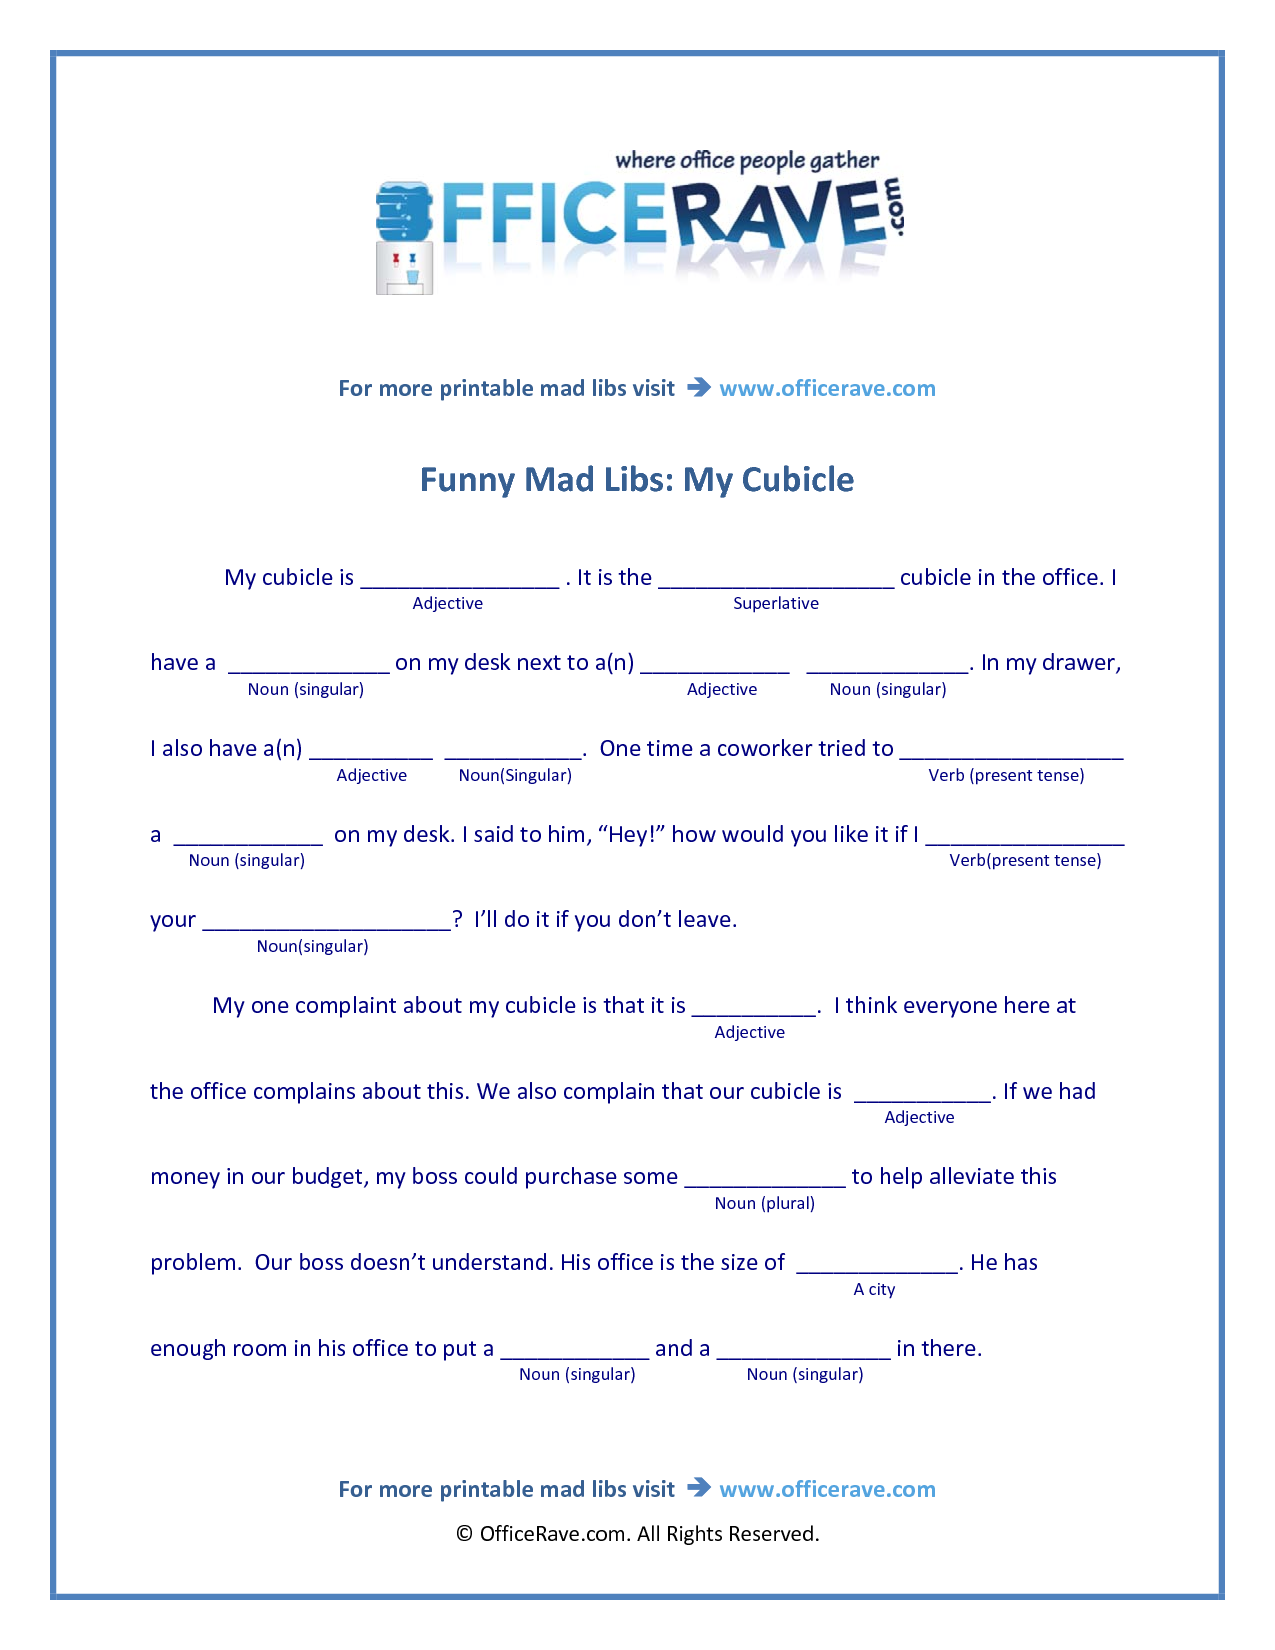 image regarding Office Mad Libs Printable referred to as outrageous libs printable No cost Printable Nuts Libs amusing Kid